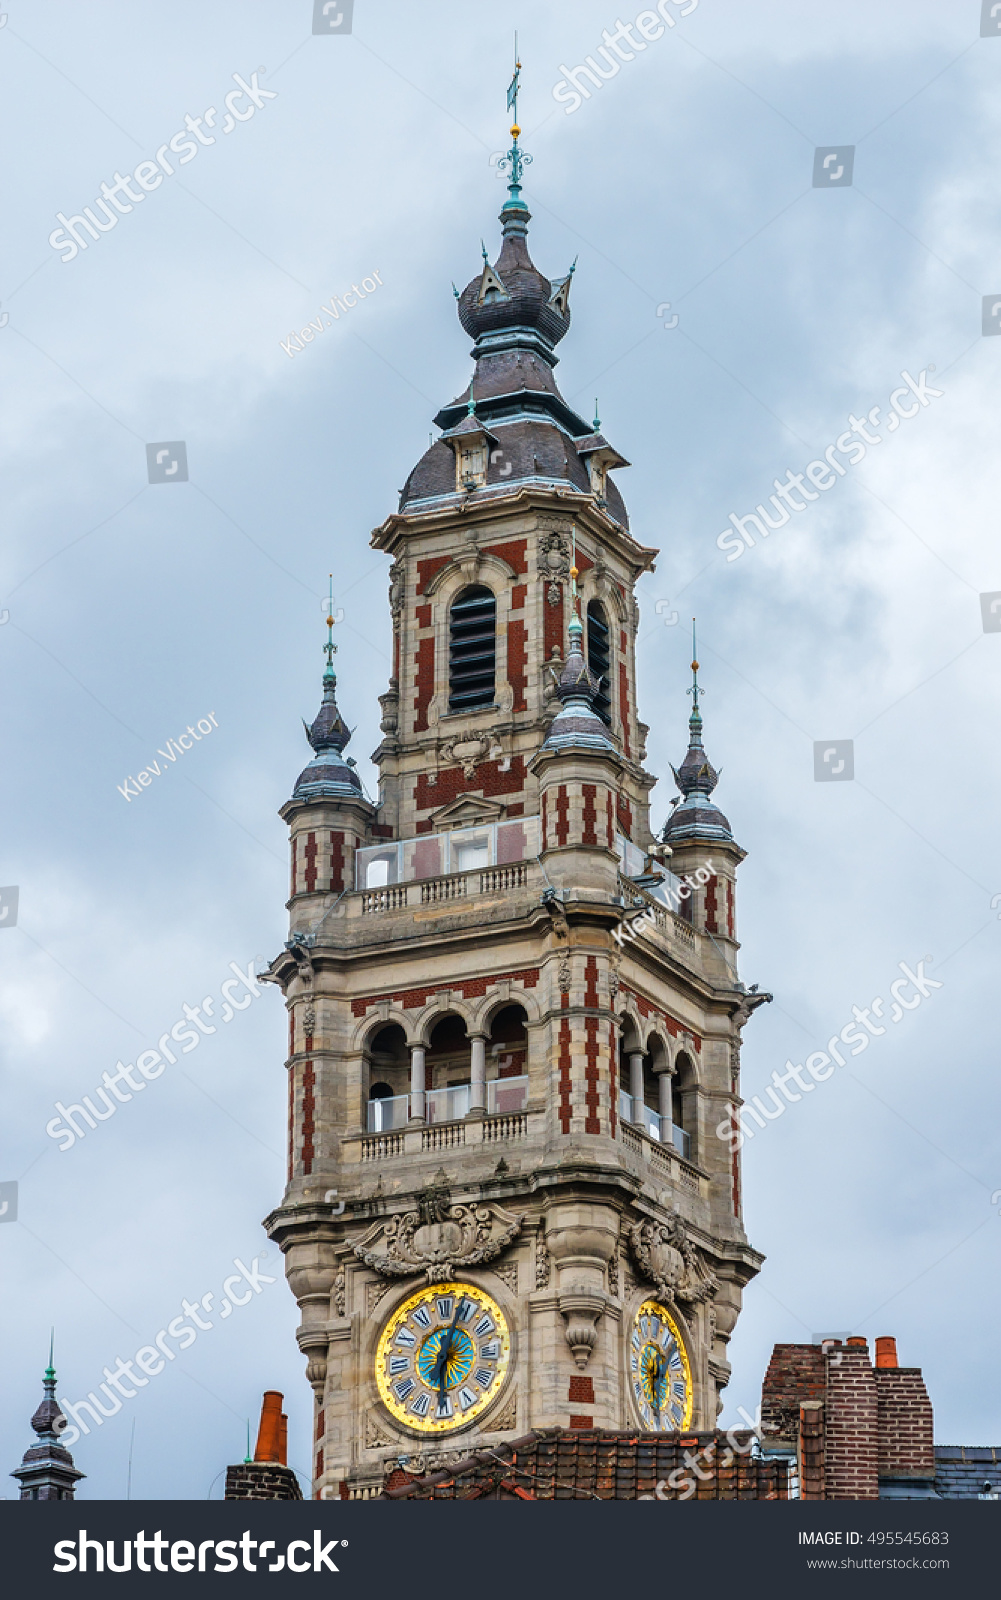 Chambre Des Commerce Et De L Industrie Belfry Industrial Trade Chamber Chambre De Stock Photo Edit Now